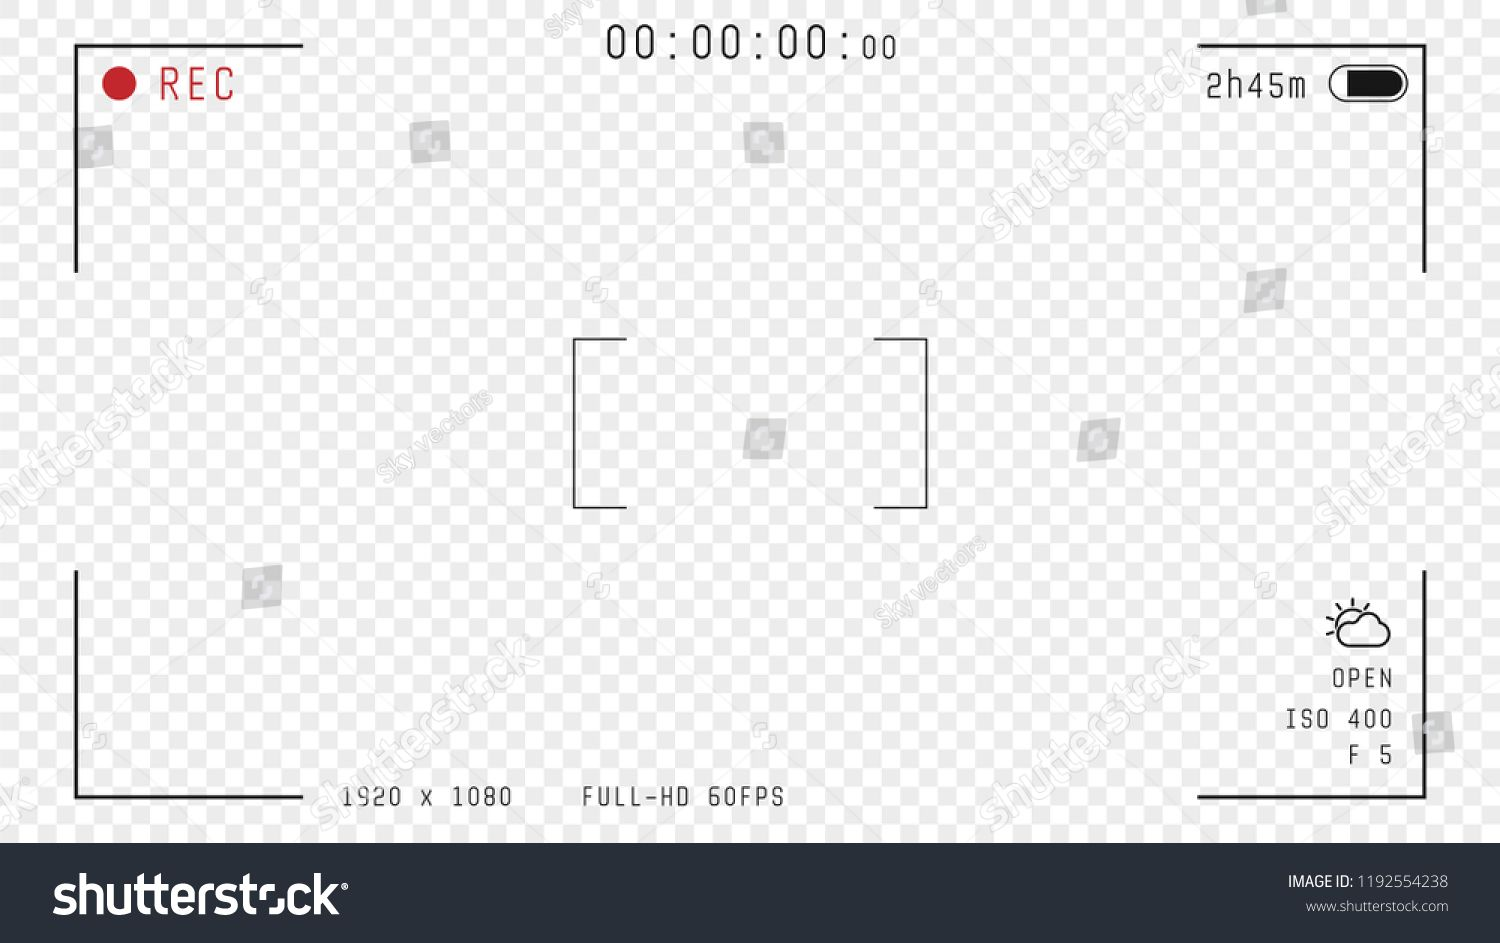 Video camera viewfinder overlay. 169 full hd format of